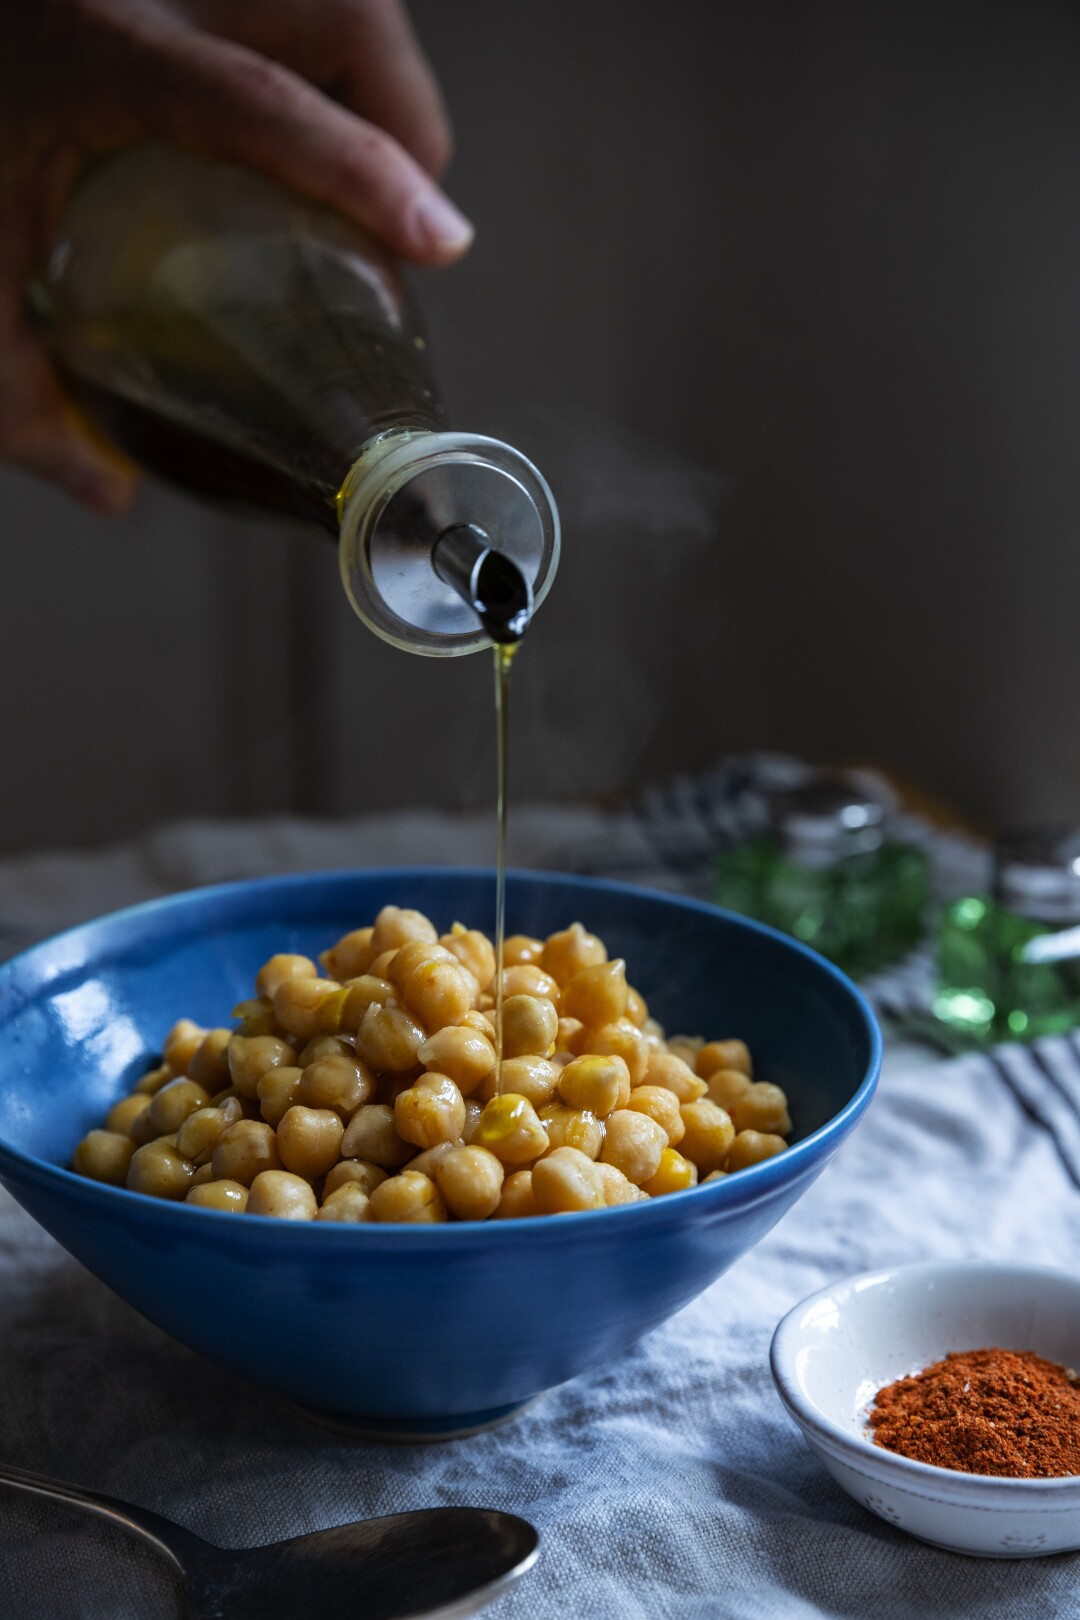 Fried Smoky Chickpeas With Garlic and Ginger